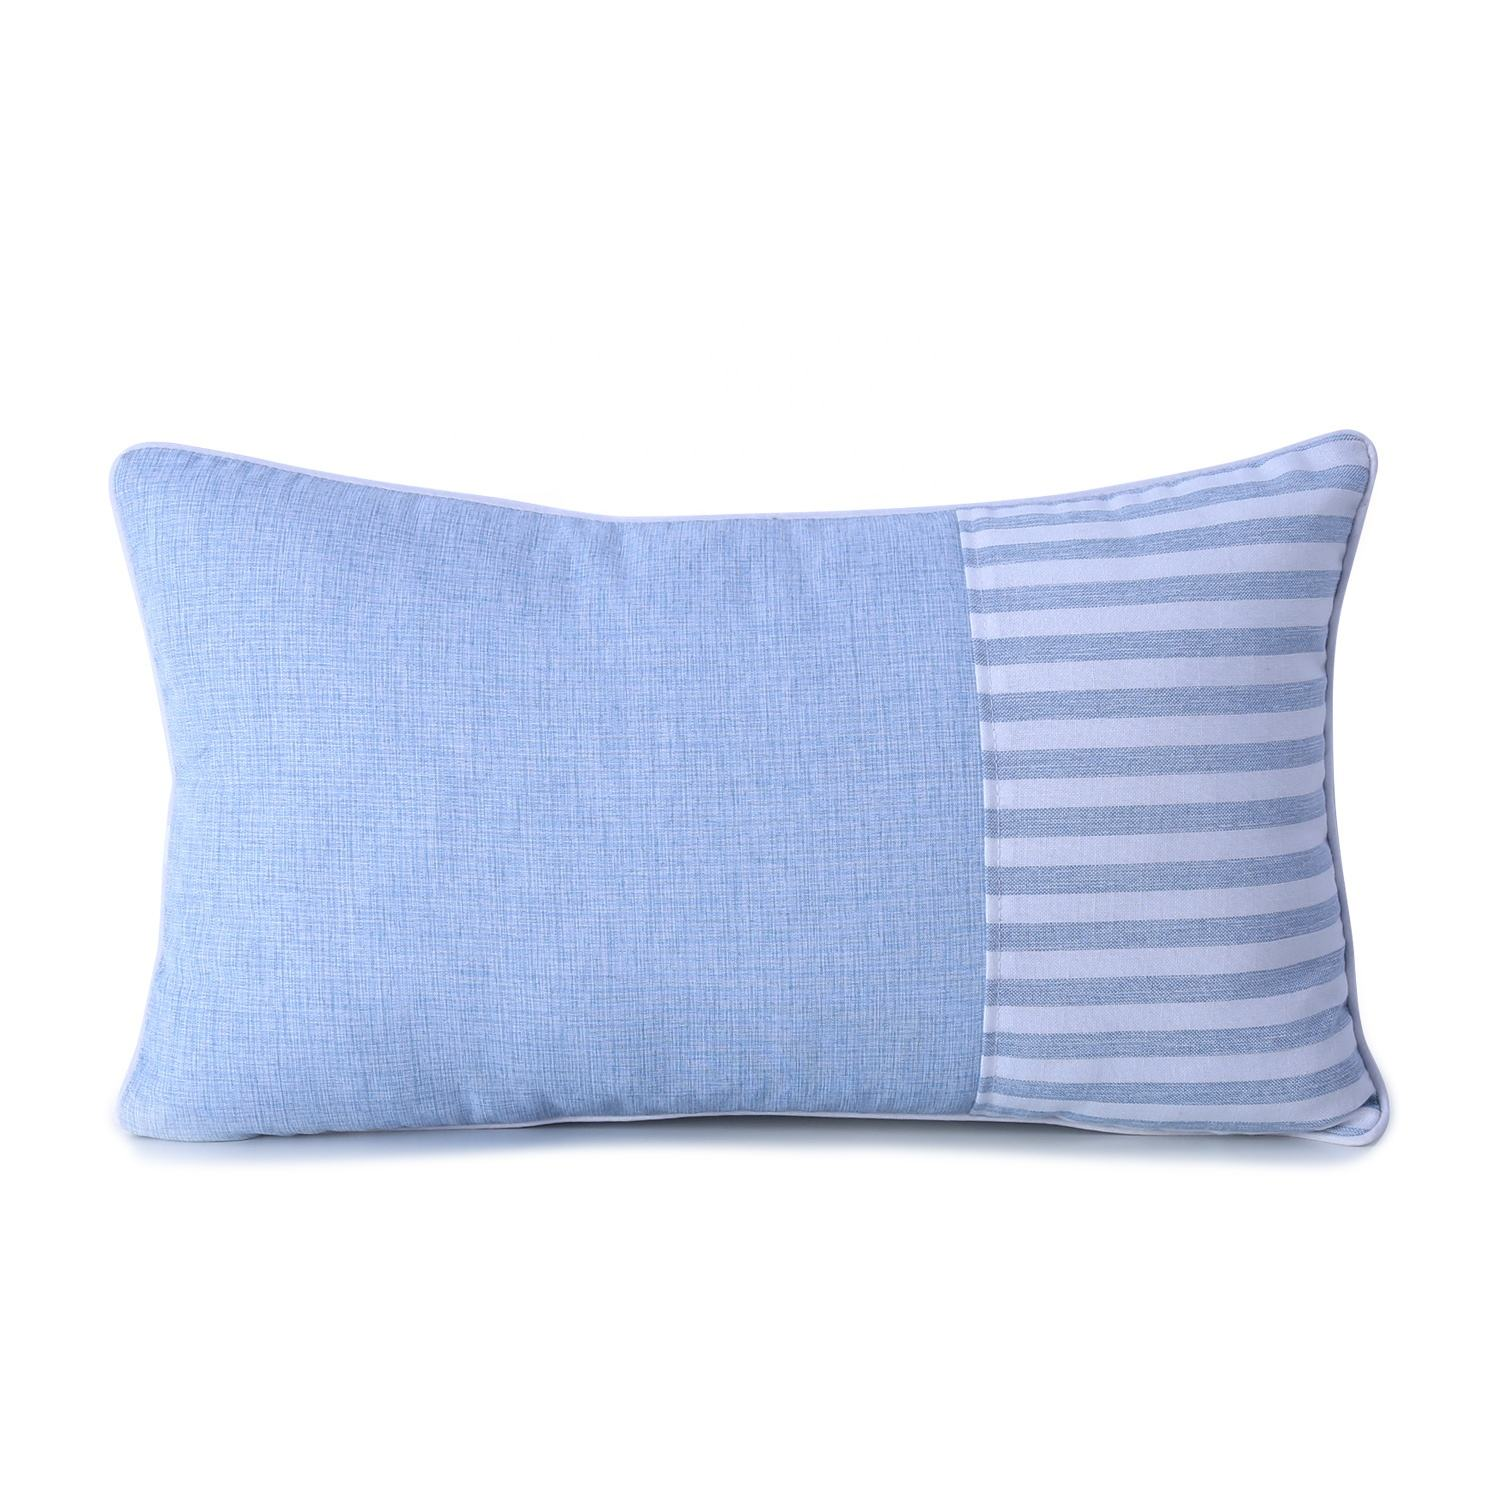 High quality home decorative splice striped indoor comfortable Rectangular sofa bed throw pillow cushion